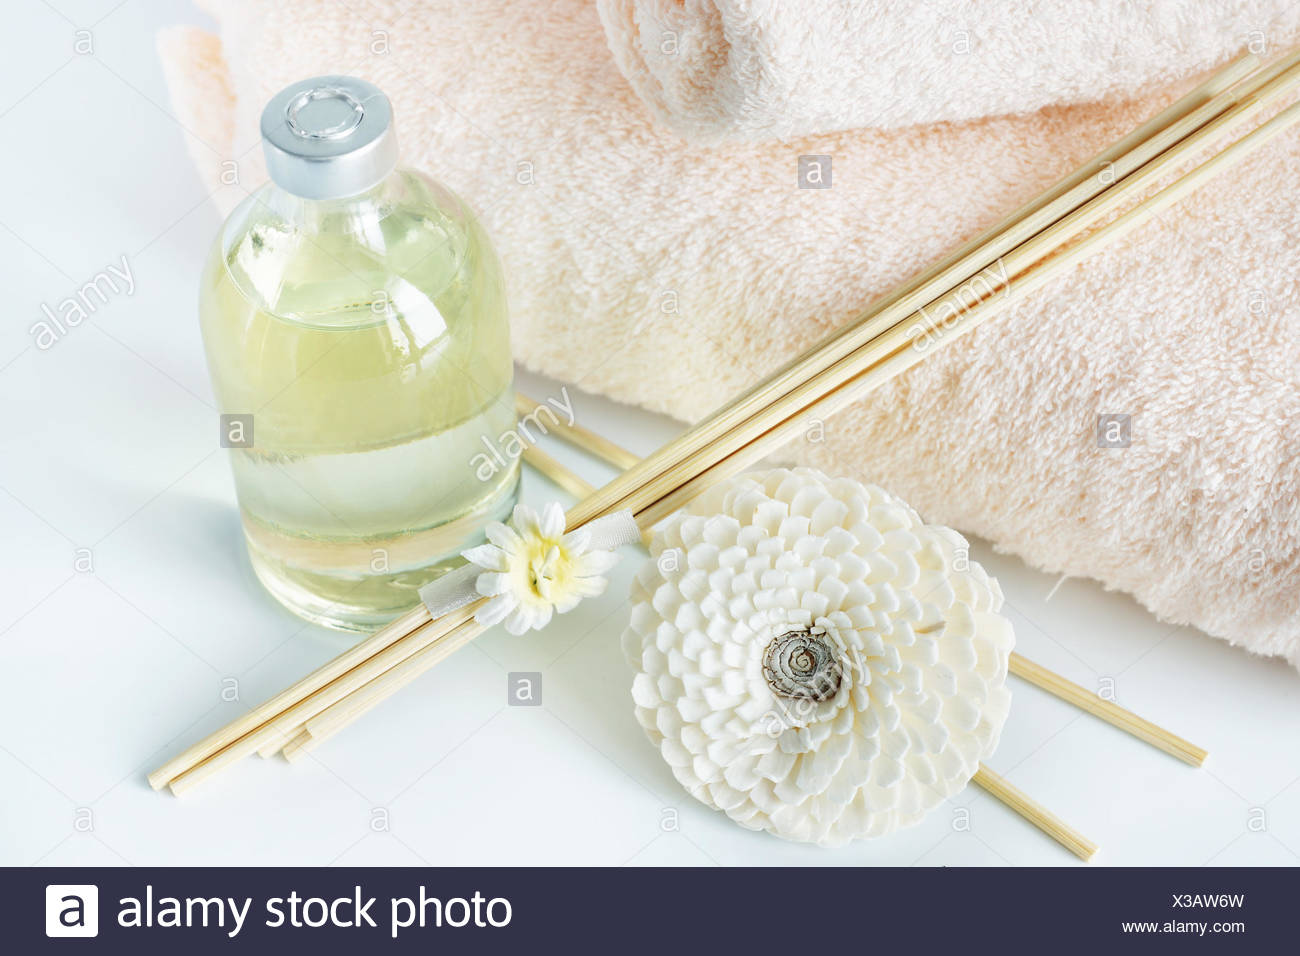 Sandal oil and sticks for spa procedures - Stock Image